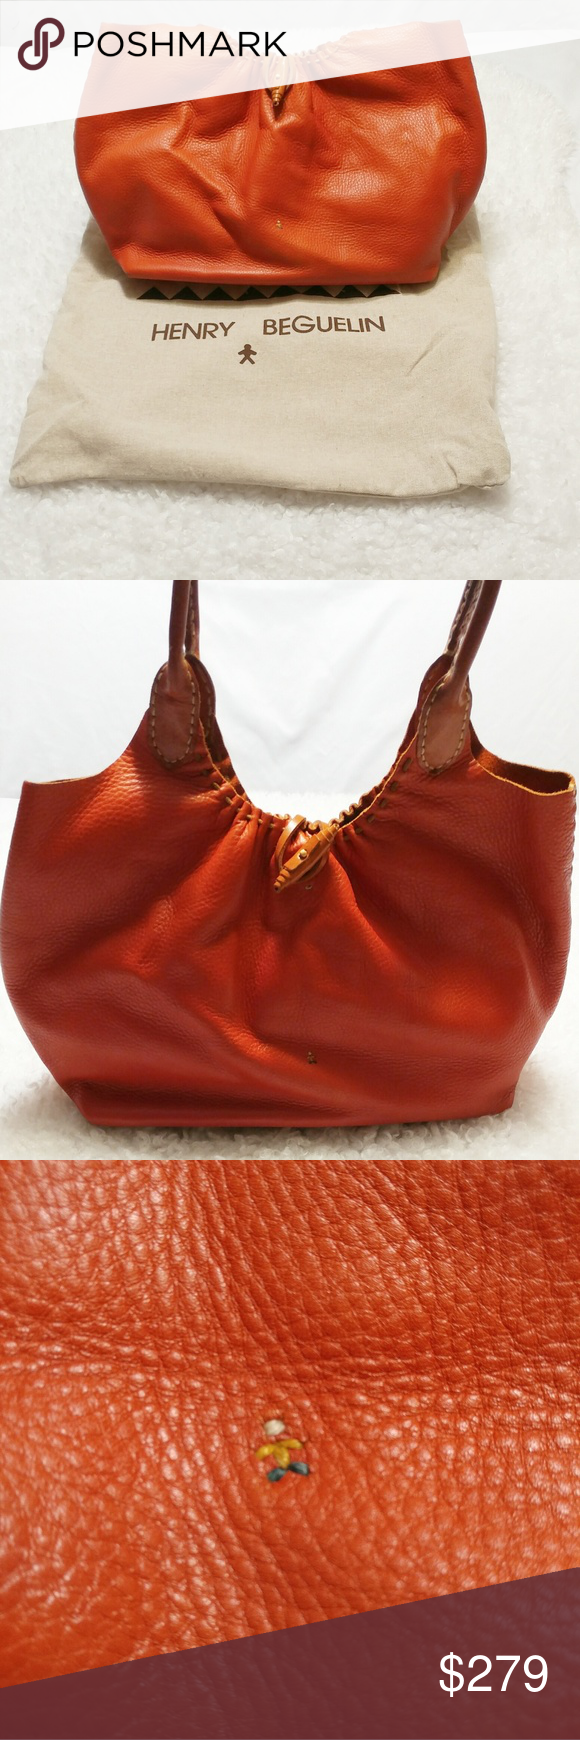 Henry Beguelin Cuir Orange/Cognac Leather Tote Bag Henry Beguelin Cuir Orange/Cognac Leather Tote Bag Orange/Cognac pebbled leather Henry Beguelin tote with wooden, leather wrapped hardware. Embroidered figurines throughout. Dual rounded shoulder straps. Tonal hide lining and toggle closure at top.   Handle Drop: 7.5